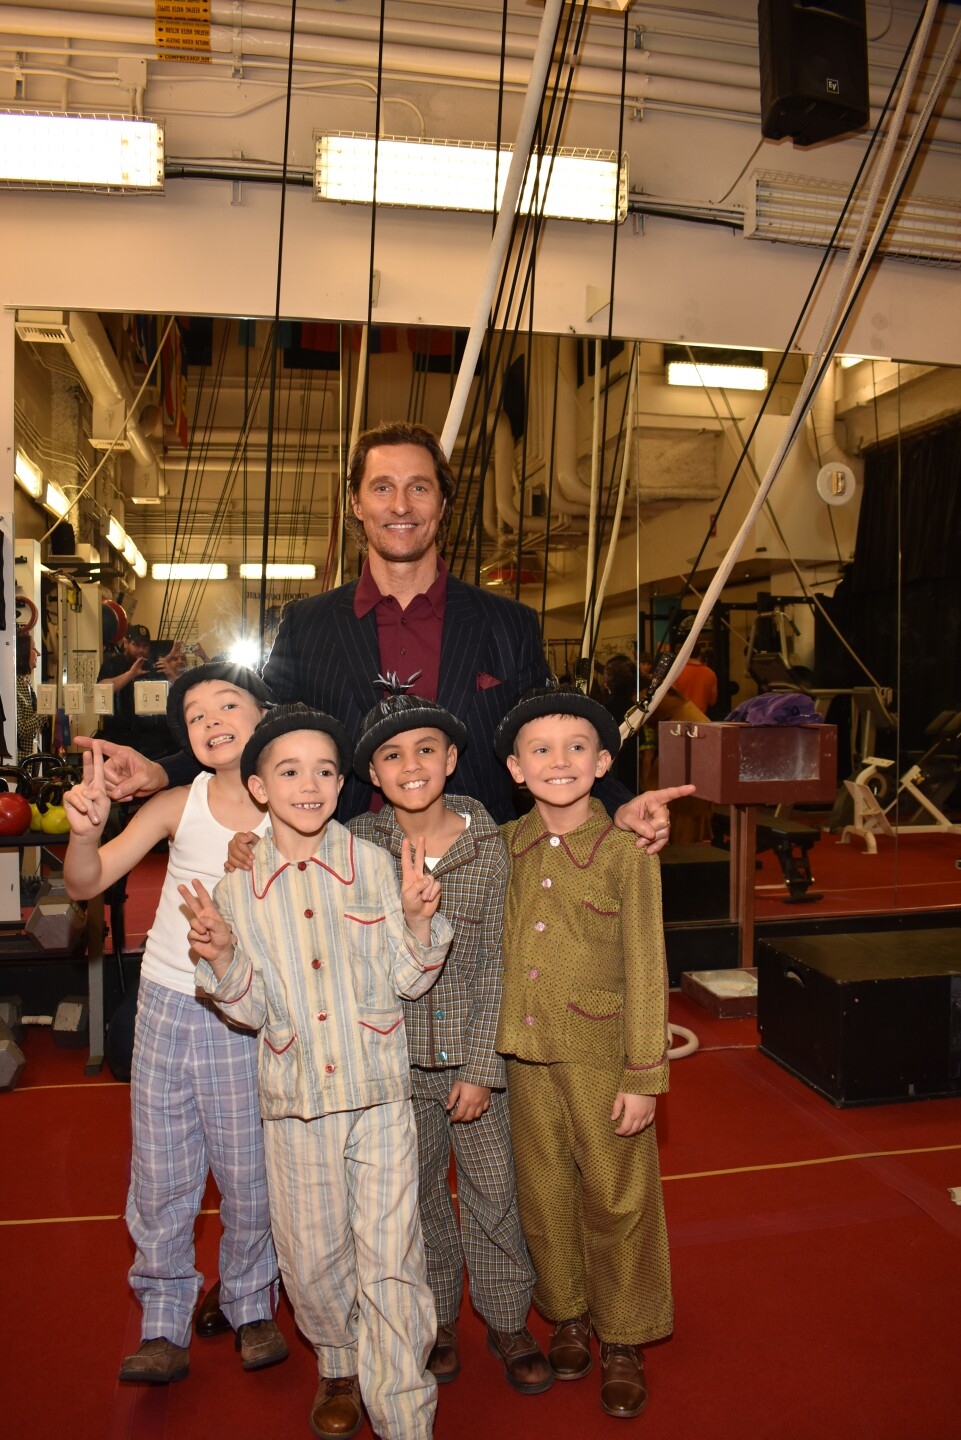 Matthew McConaughey with the Kids of Liverpool at LOVE by Cirque du Soleil, Jan. 18, 2020.jpg